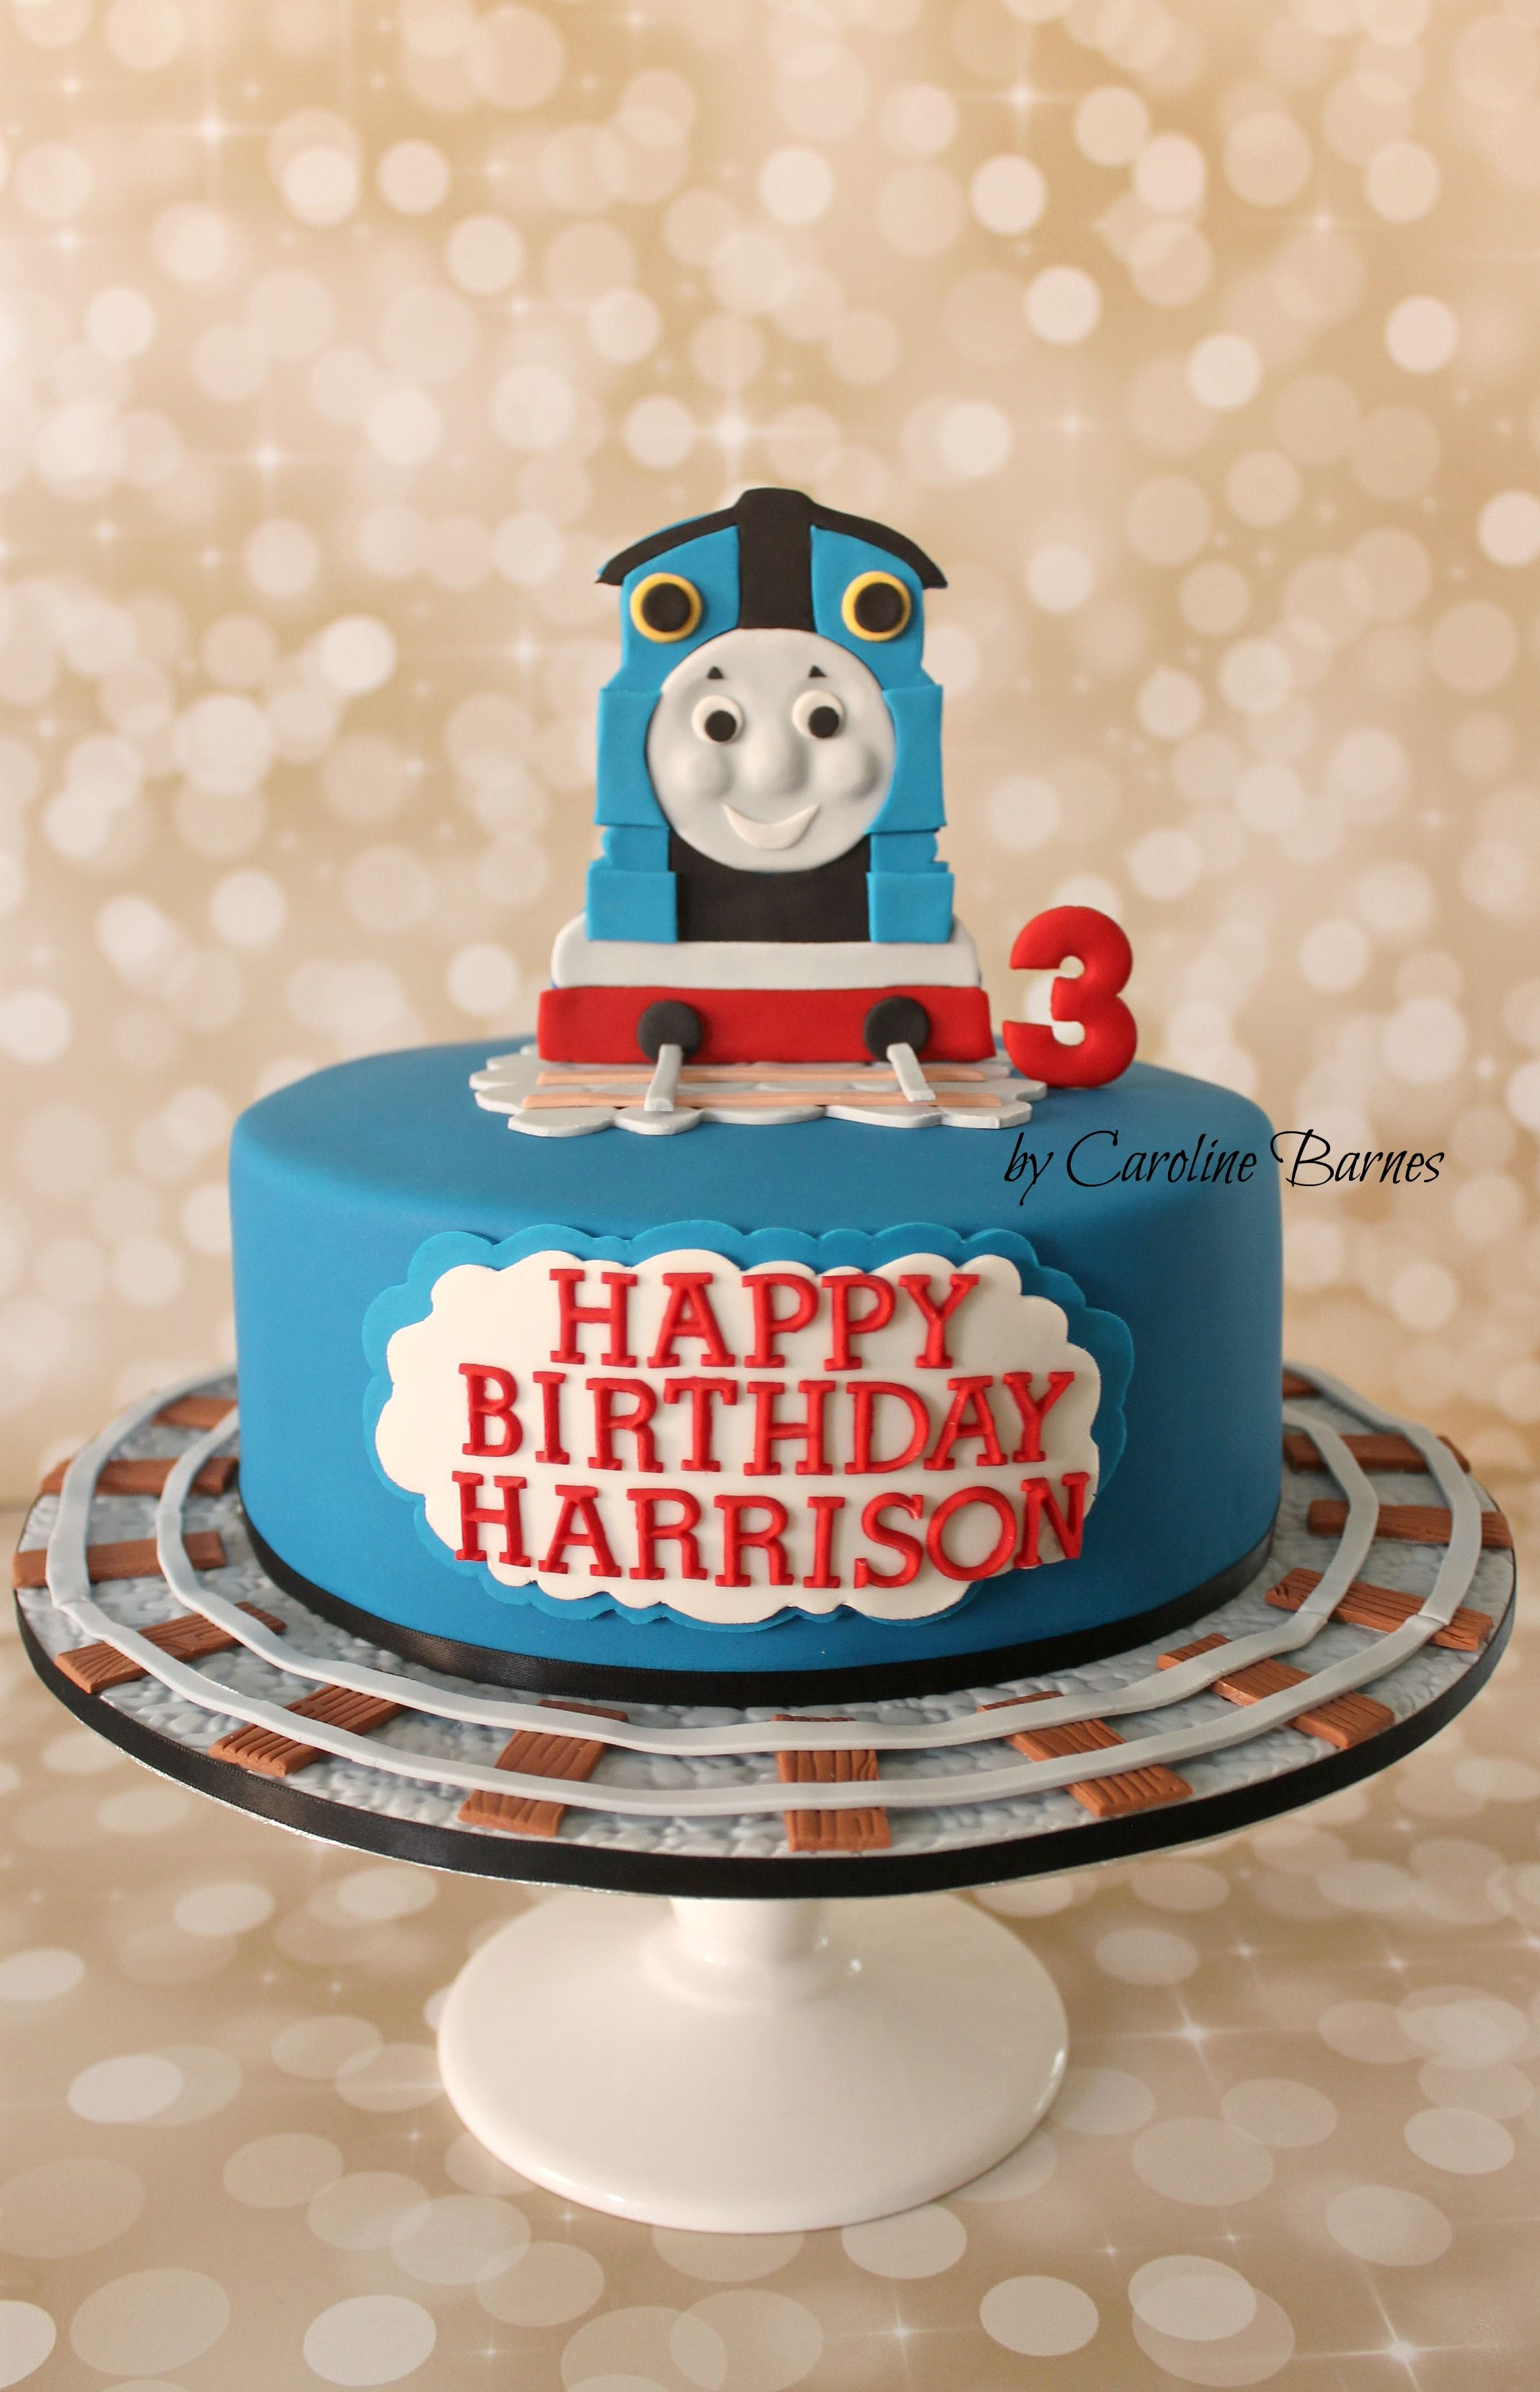 Thomas The Tank Engine Cake With Hand Cut D Topper Love Cake - Thomas birthday cake